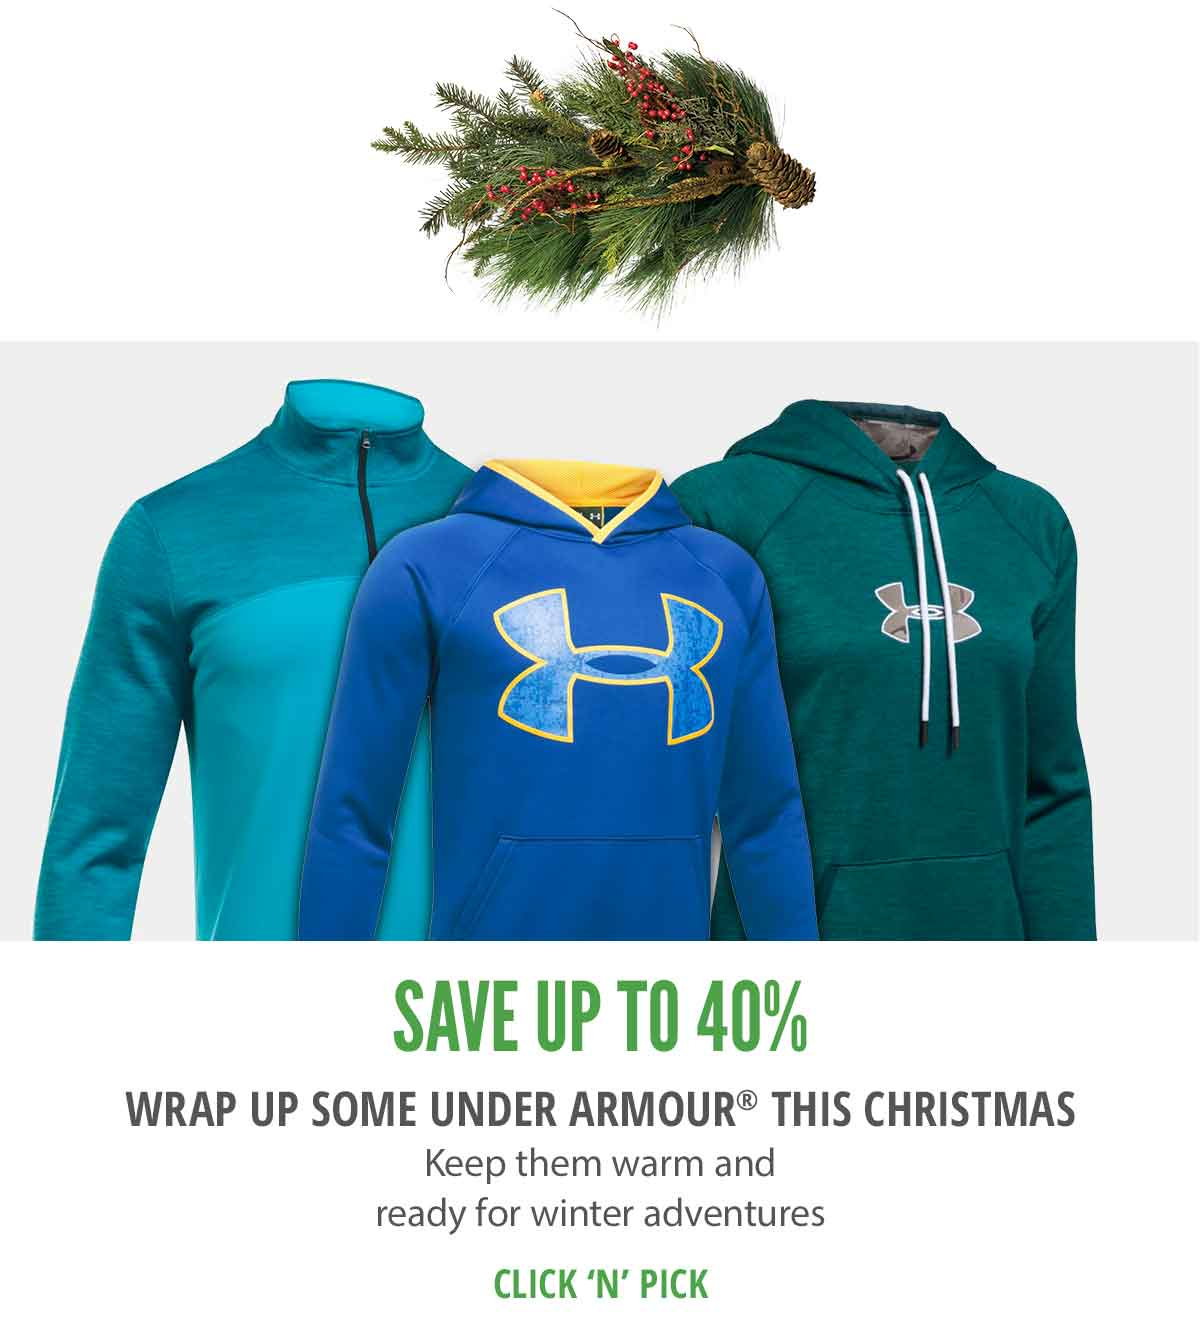 Wrap up some Under Armour this Christmas